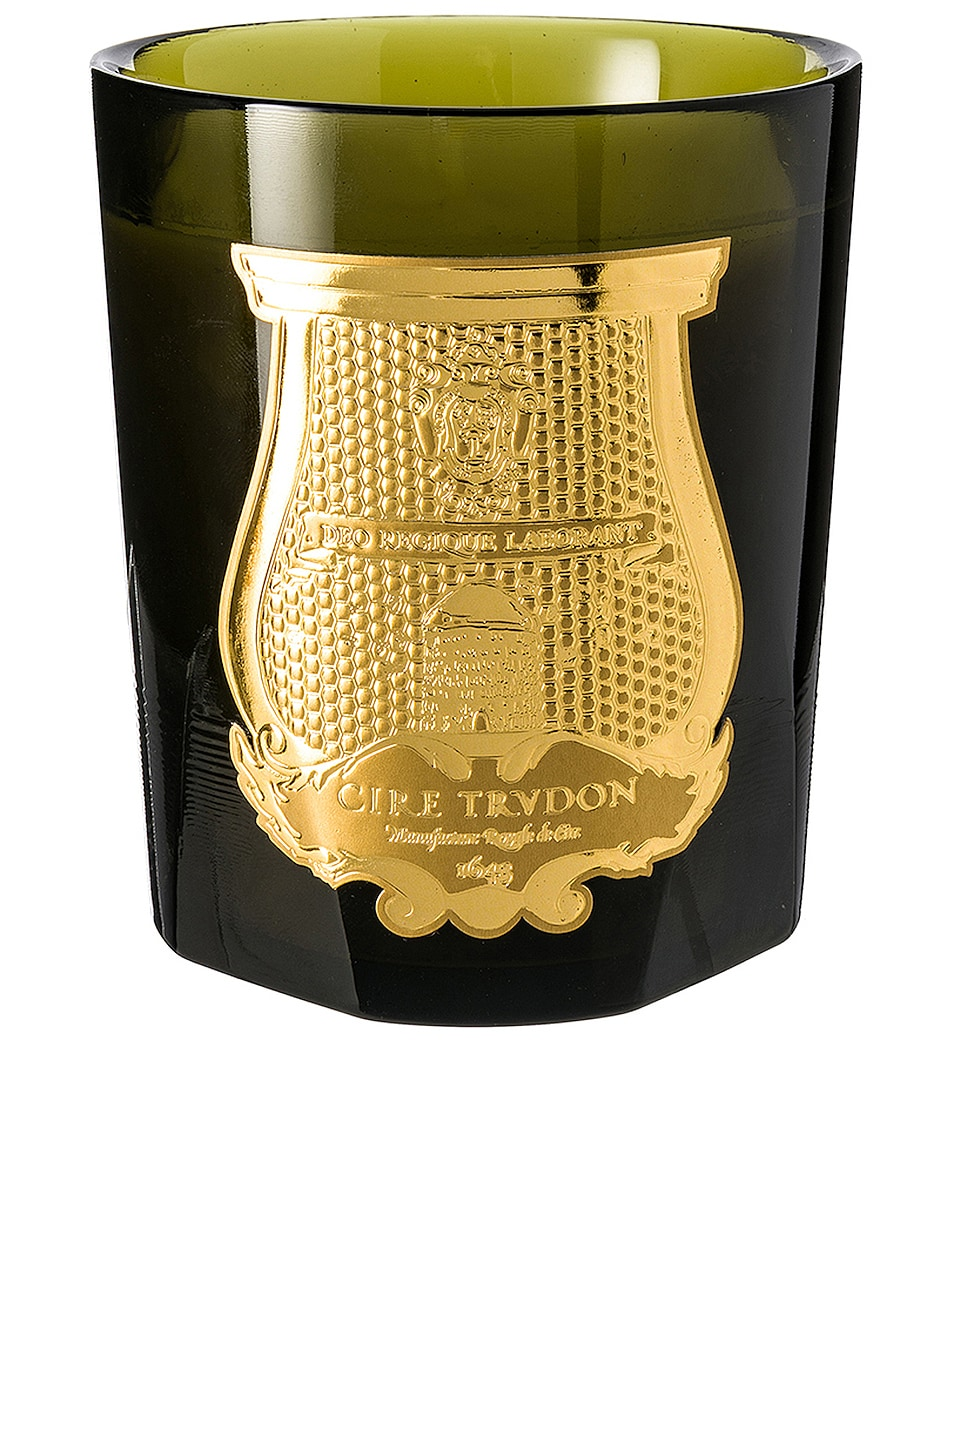 Image 1 of Cire Trudon Odalisque Classic Scented Candle in Odalisque